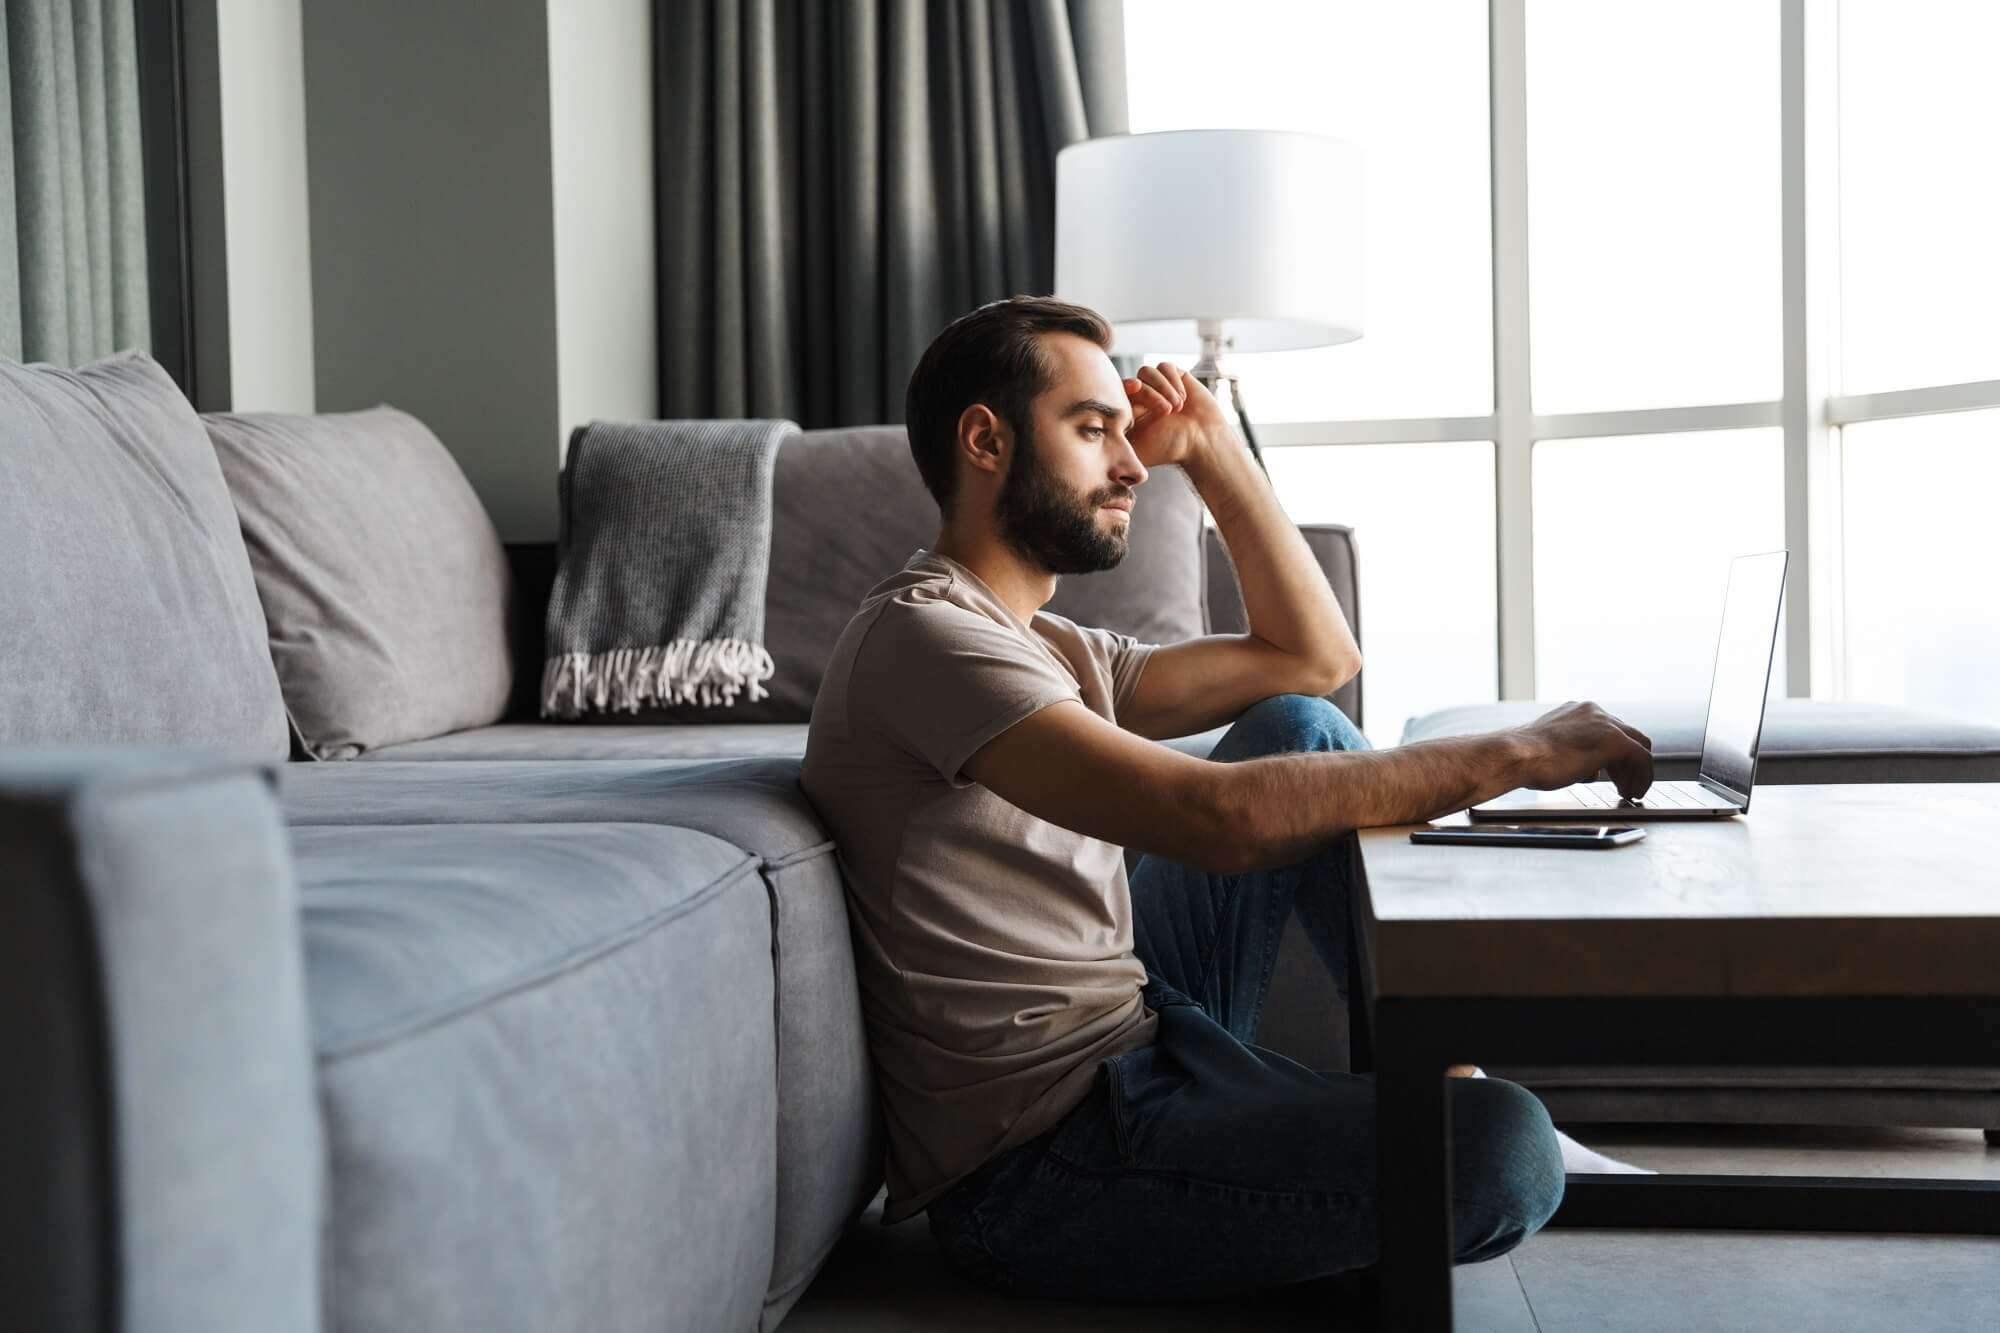 young man indoors at home using laptop computer.